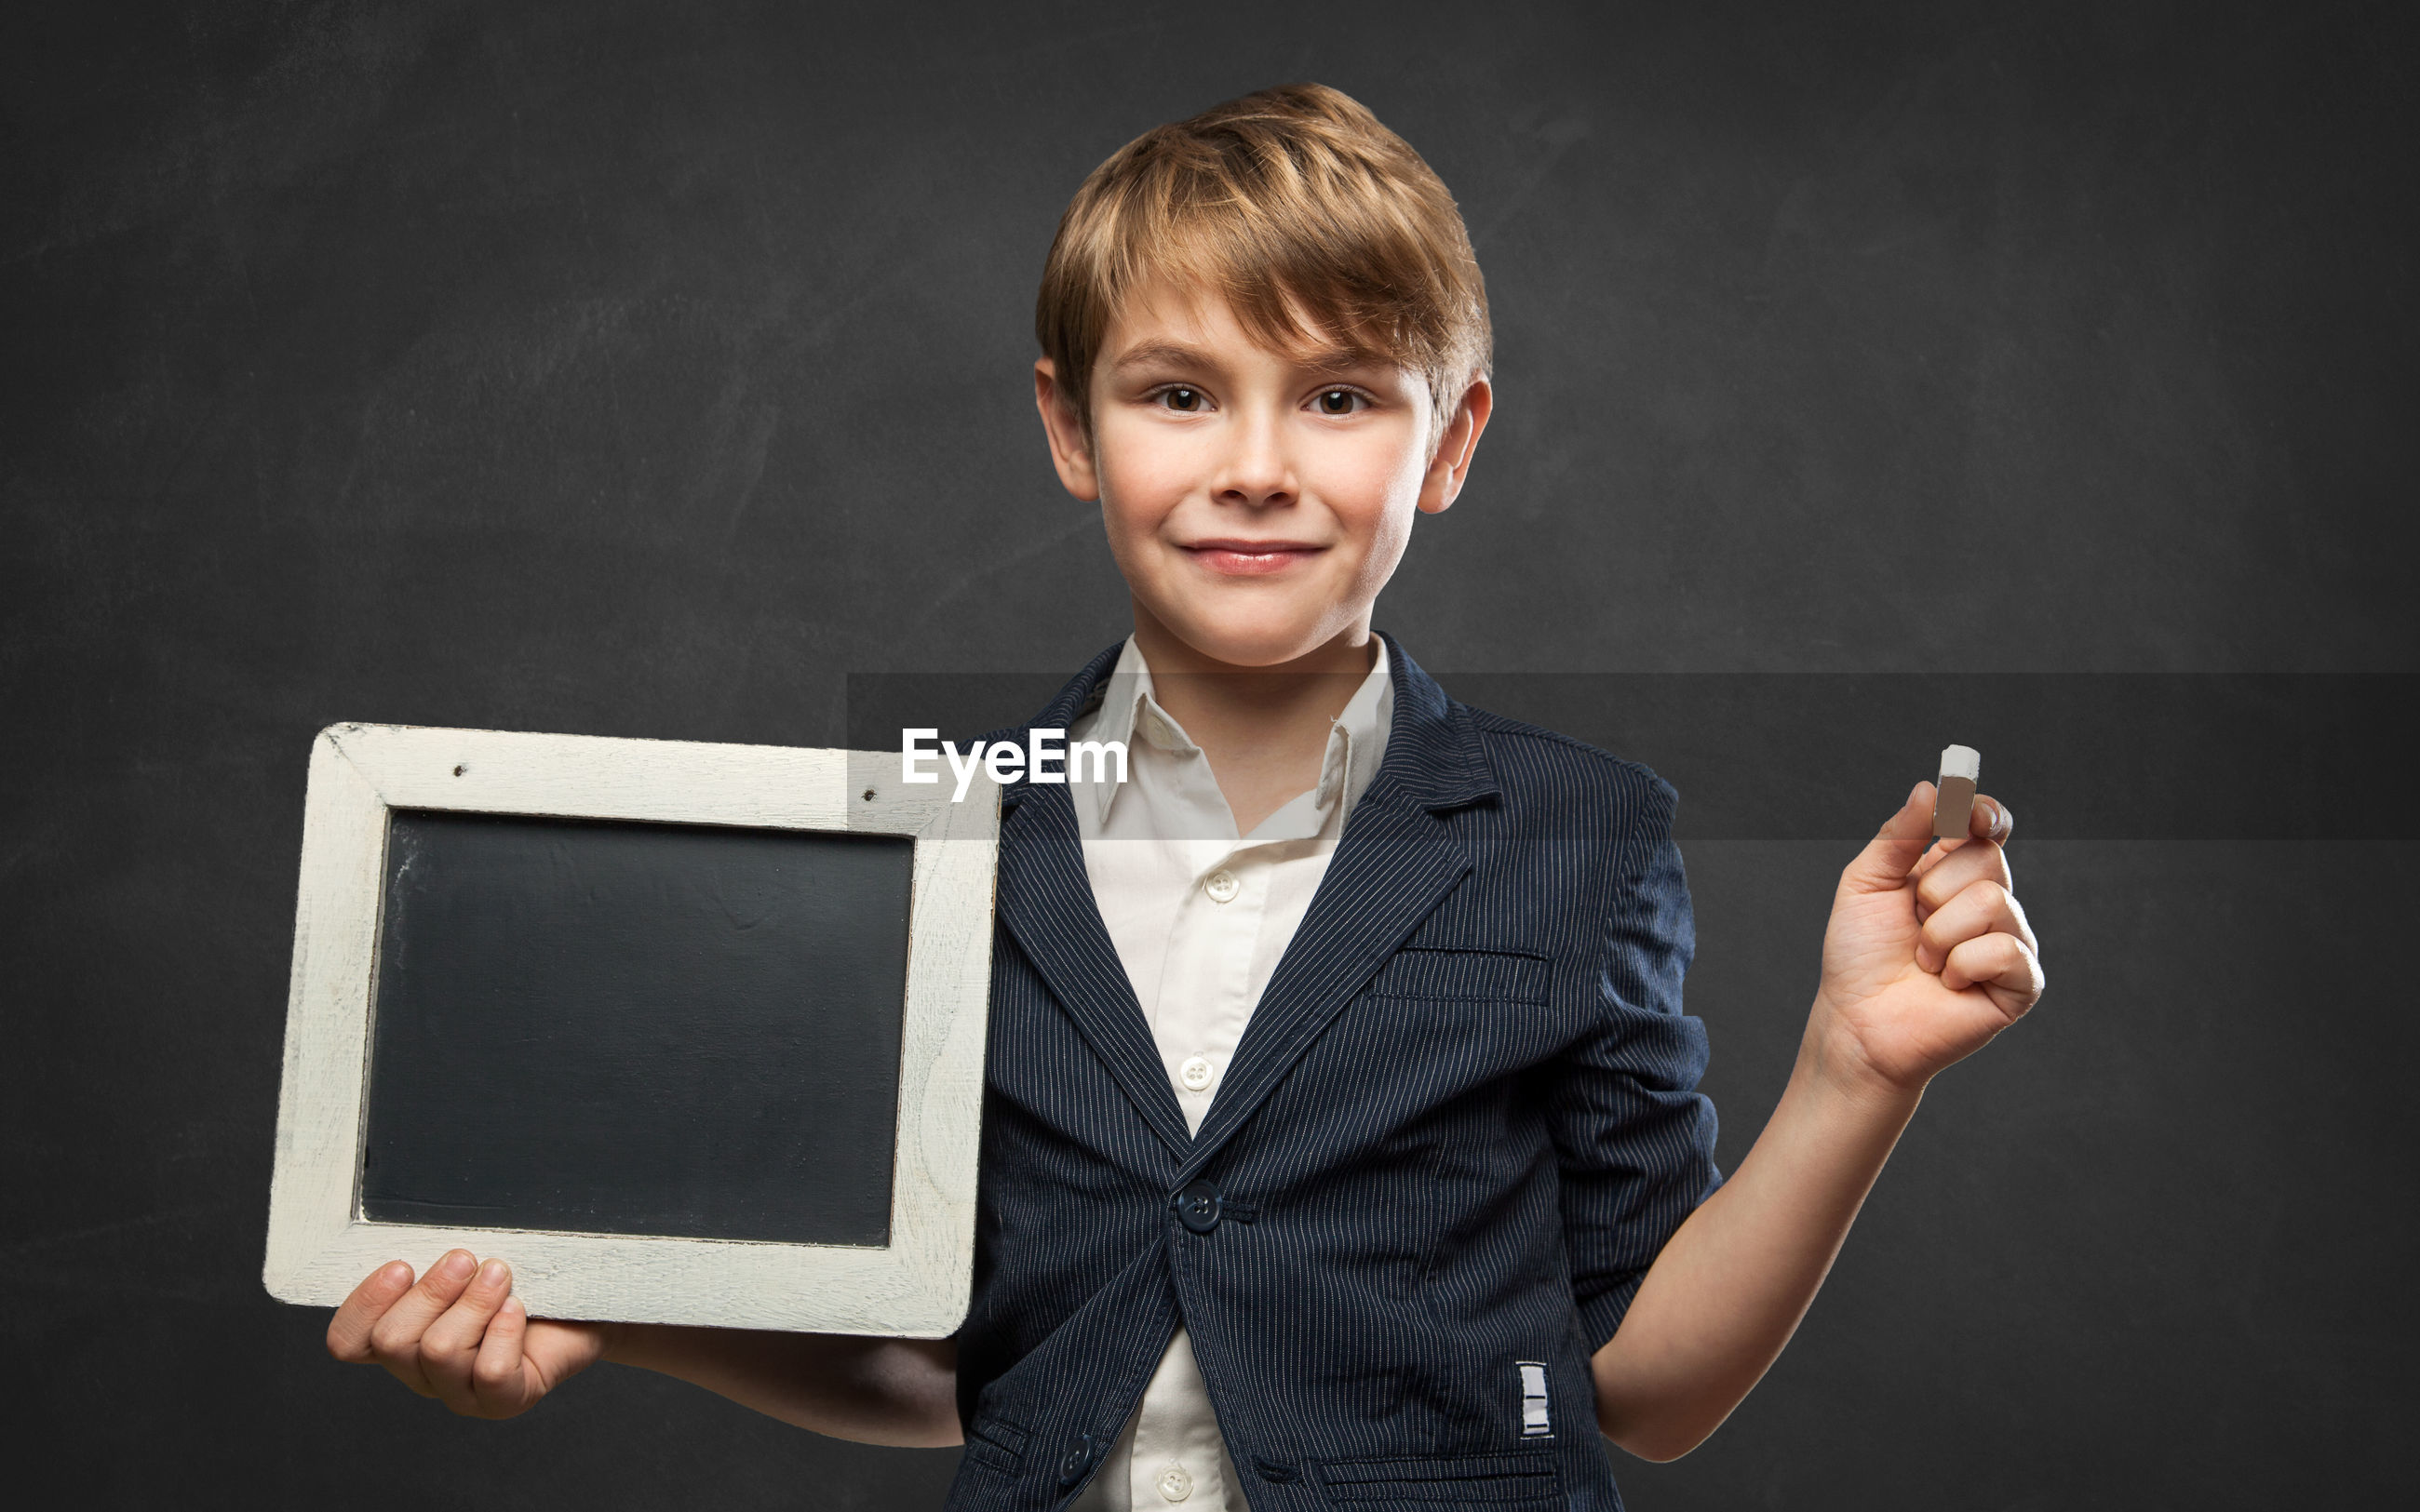 Portrait of boy holding slate standing against black background